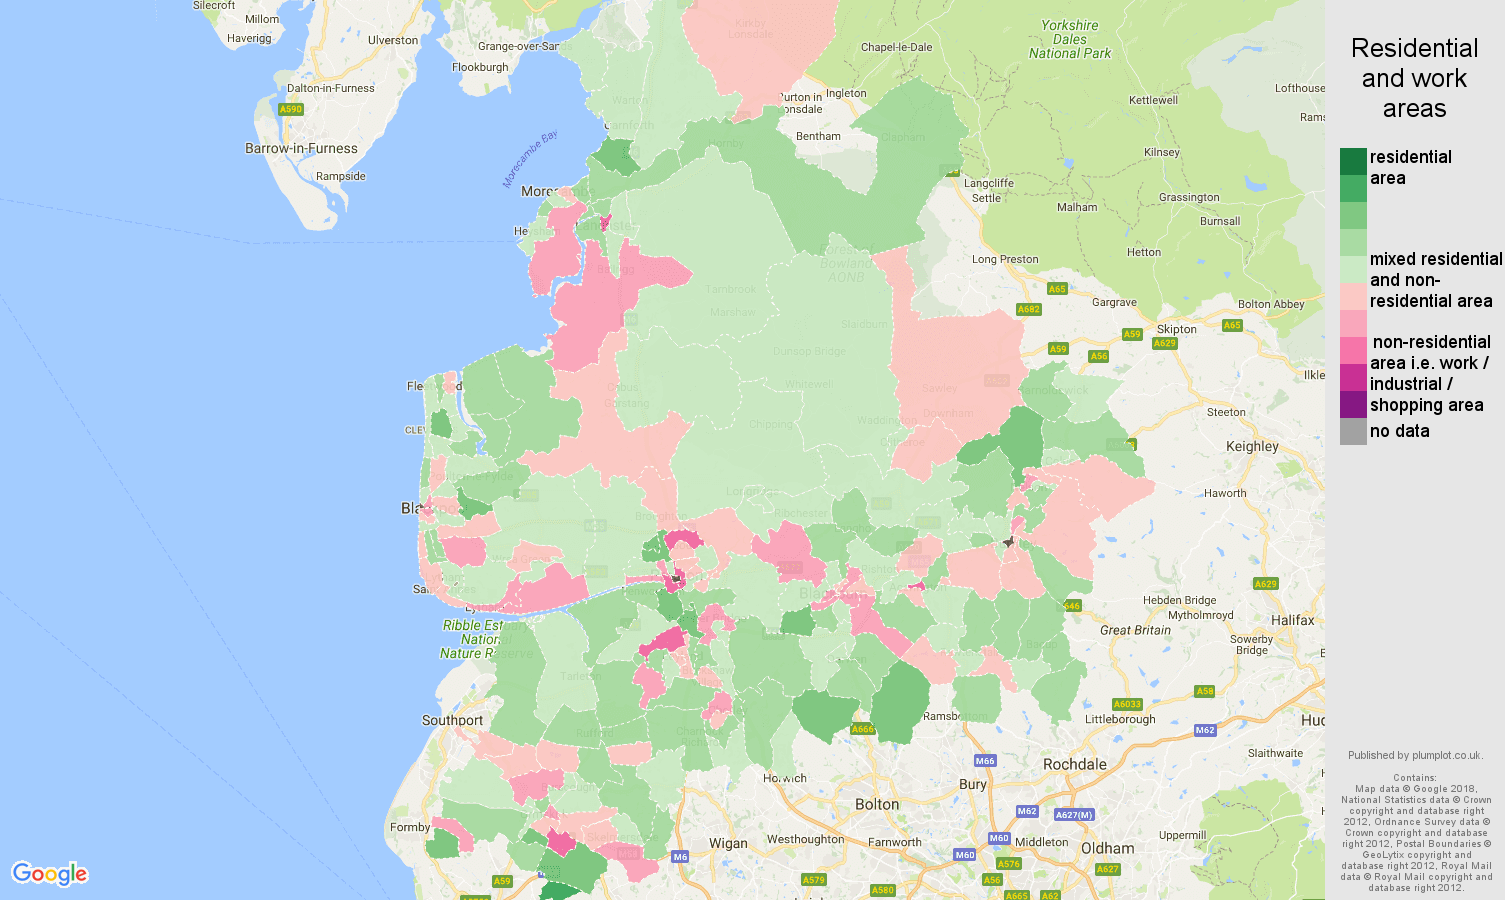 Lancashire residential areas map